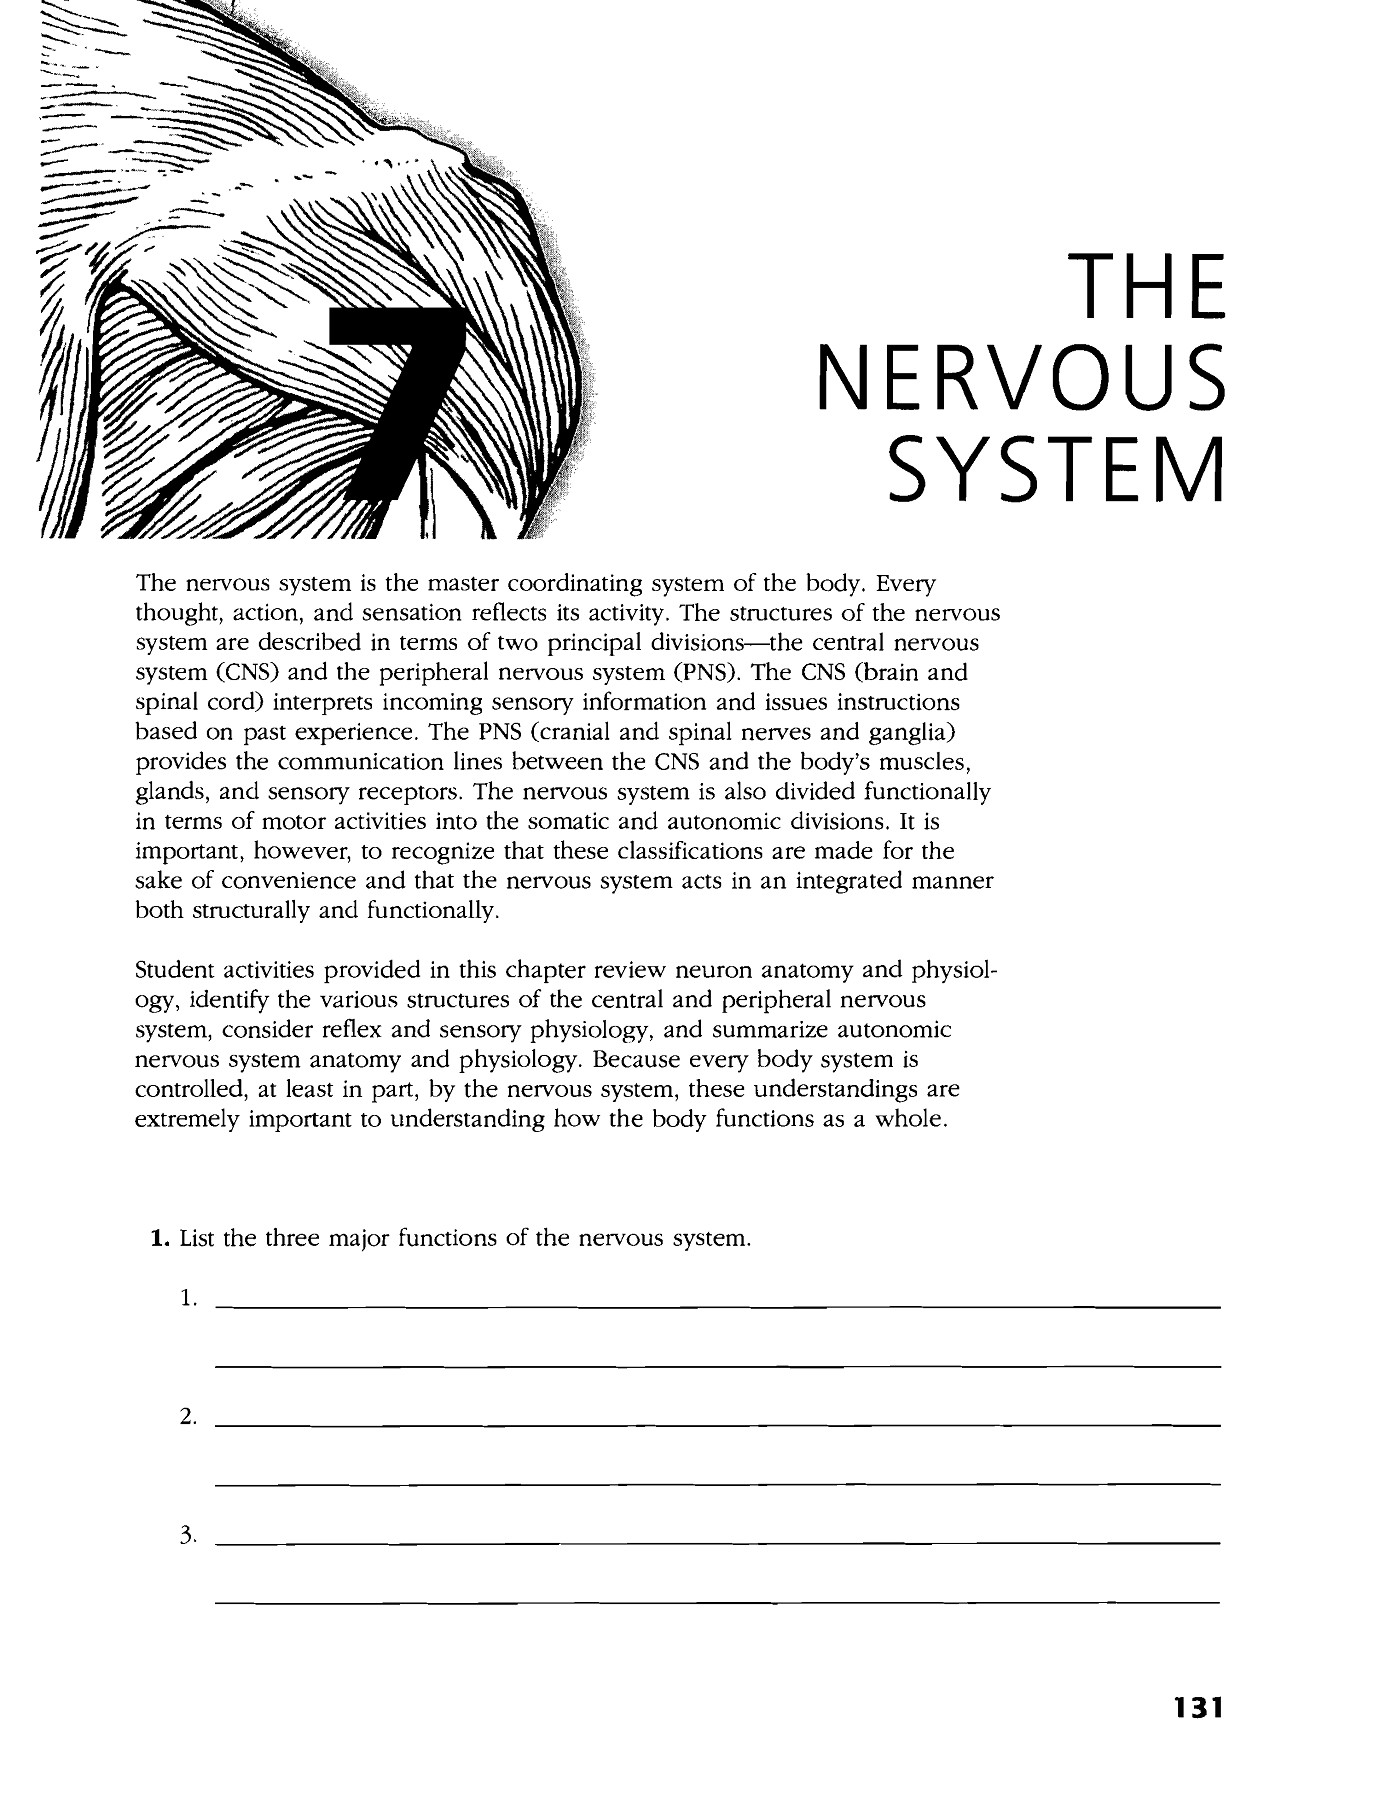 THE NERVOUS SYSTEM Lake County Schools Overview Pages 1